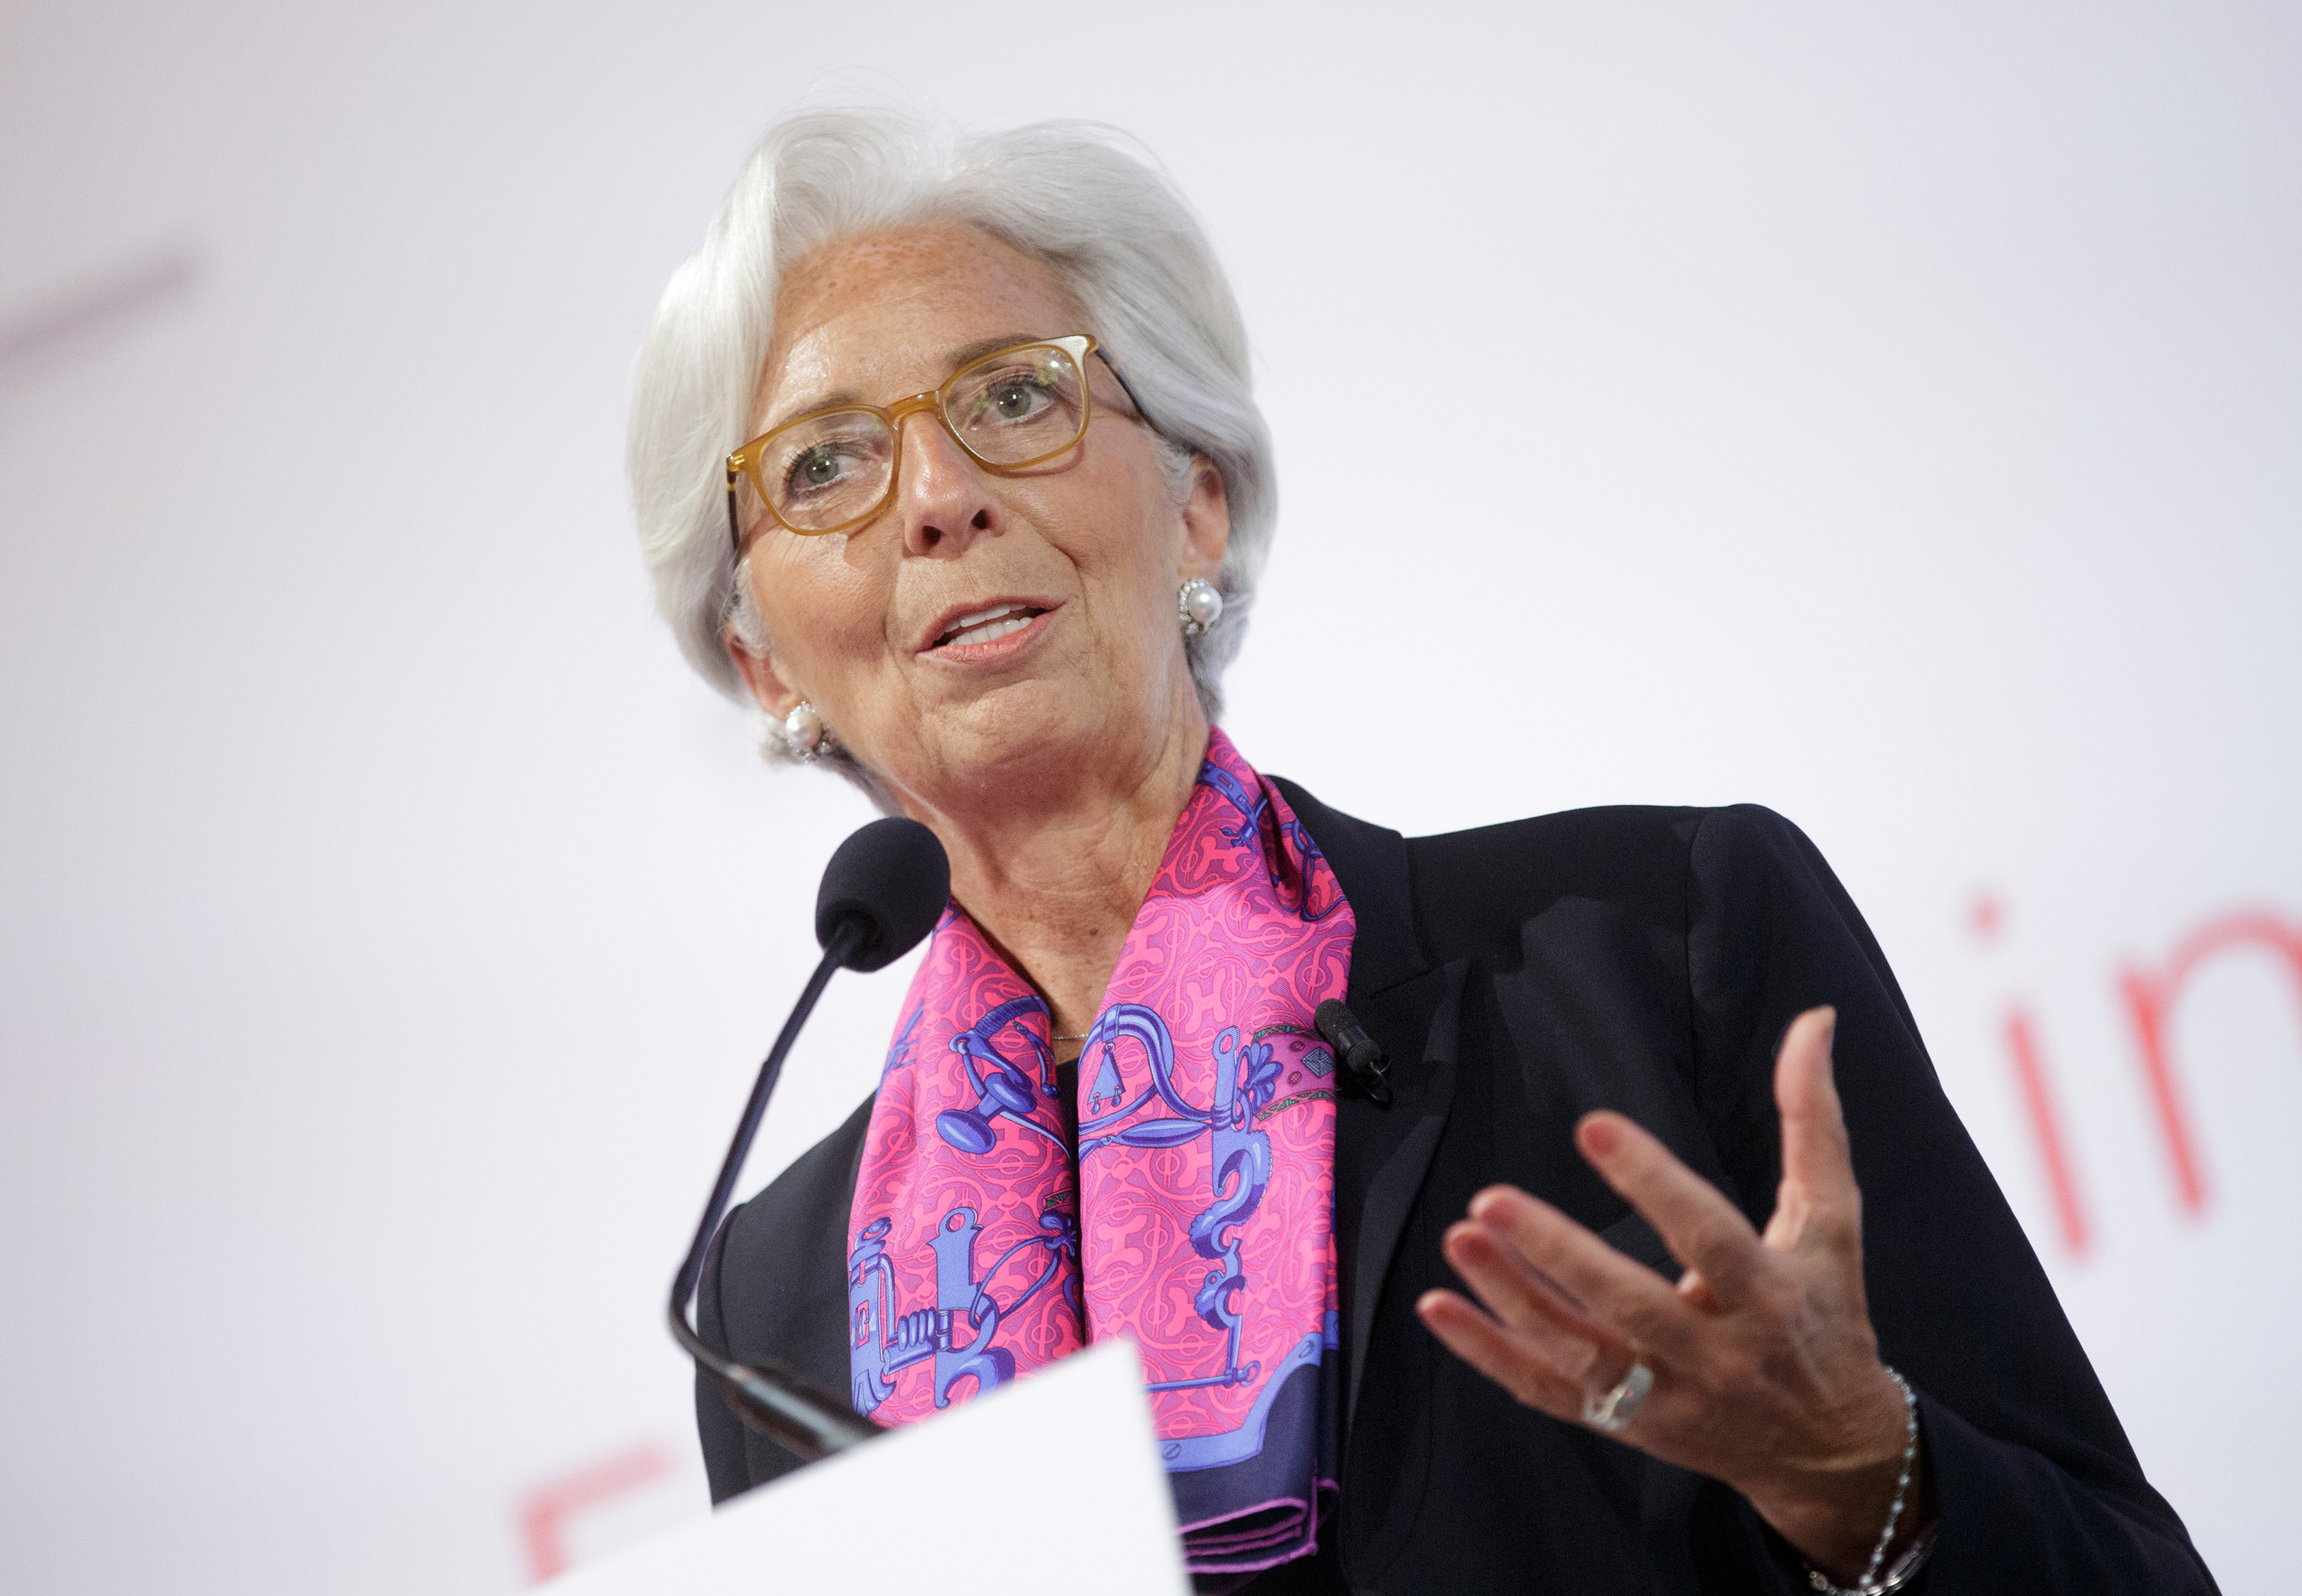 Christine Lagarde, managing director of the International Monetary Fund (IMF), gestures as she speaks during a panel session at the Hofburg Palace in Vienna, Austria, on June 17, 2016.